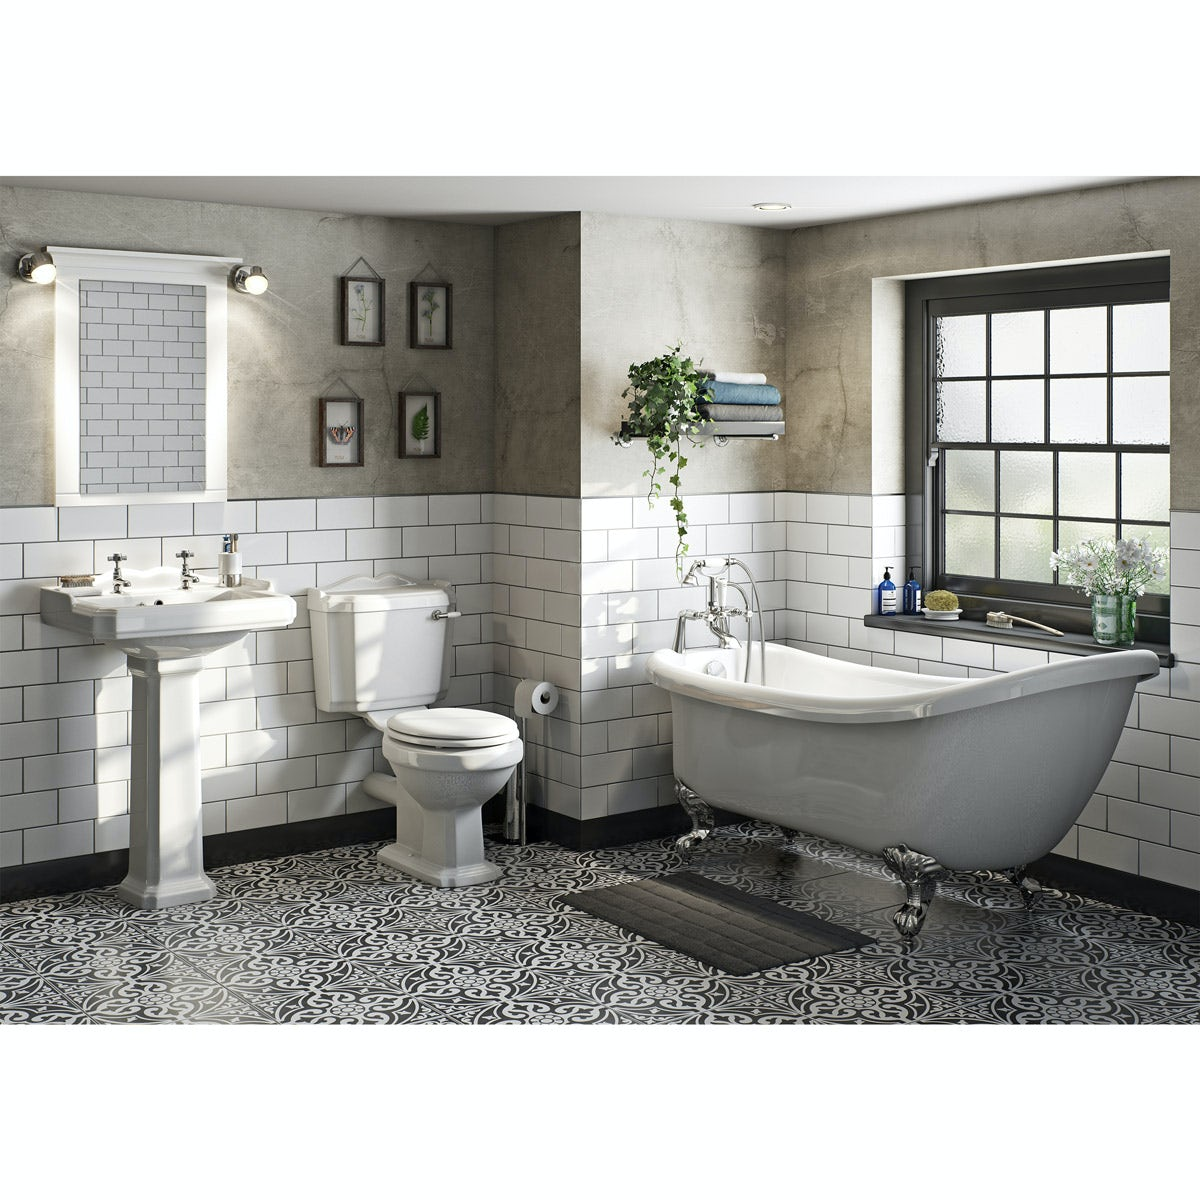 The Bath Co Winchester Bathroom Suite With Roll Top Bath And Taps